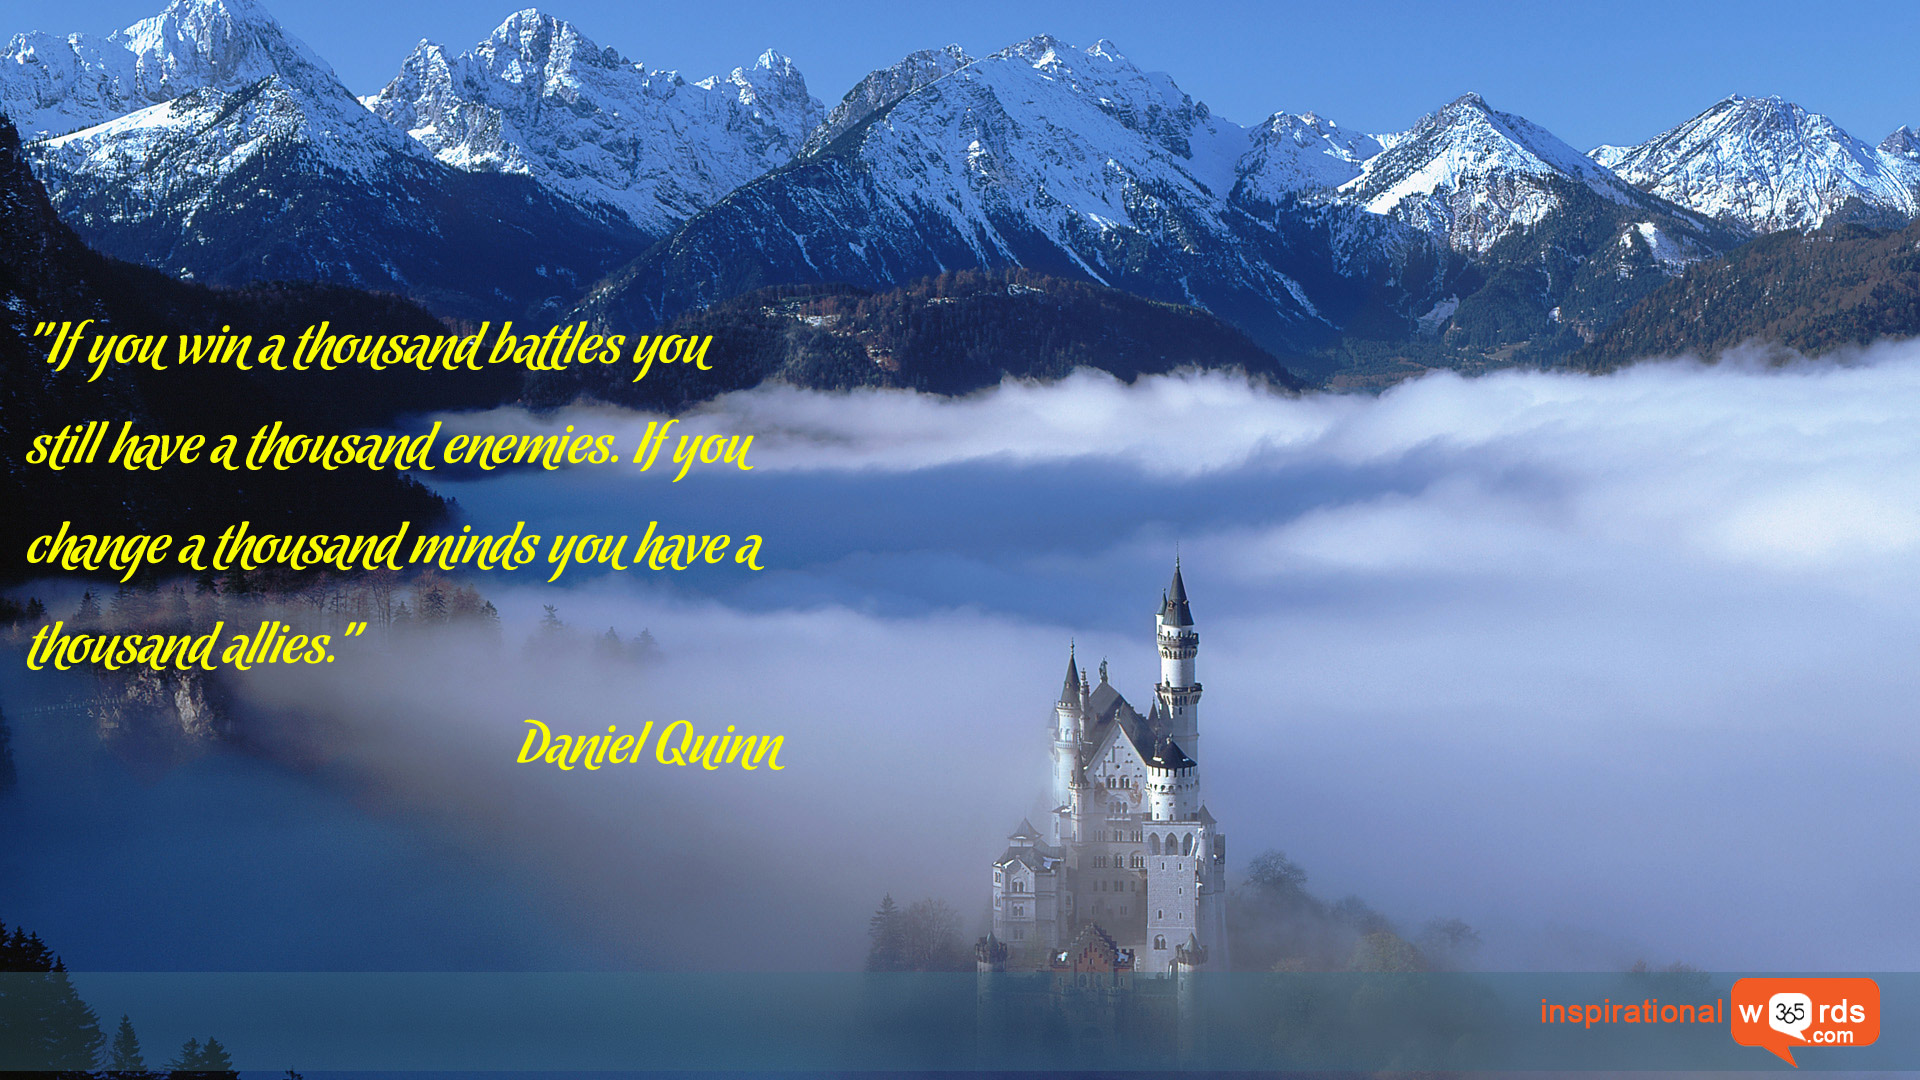 Inspirational Wallpaper Quote by Daniel Quinn